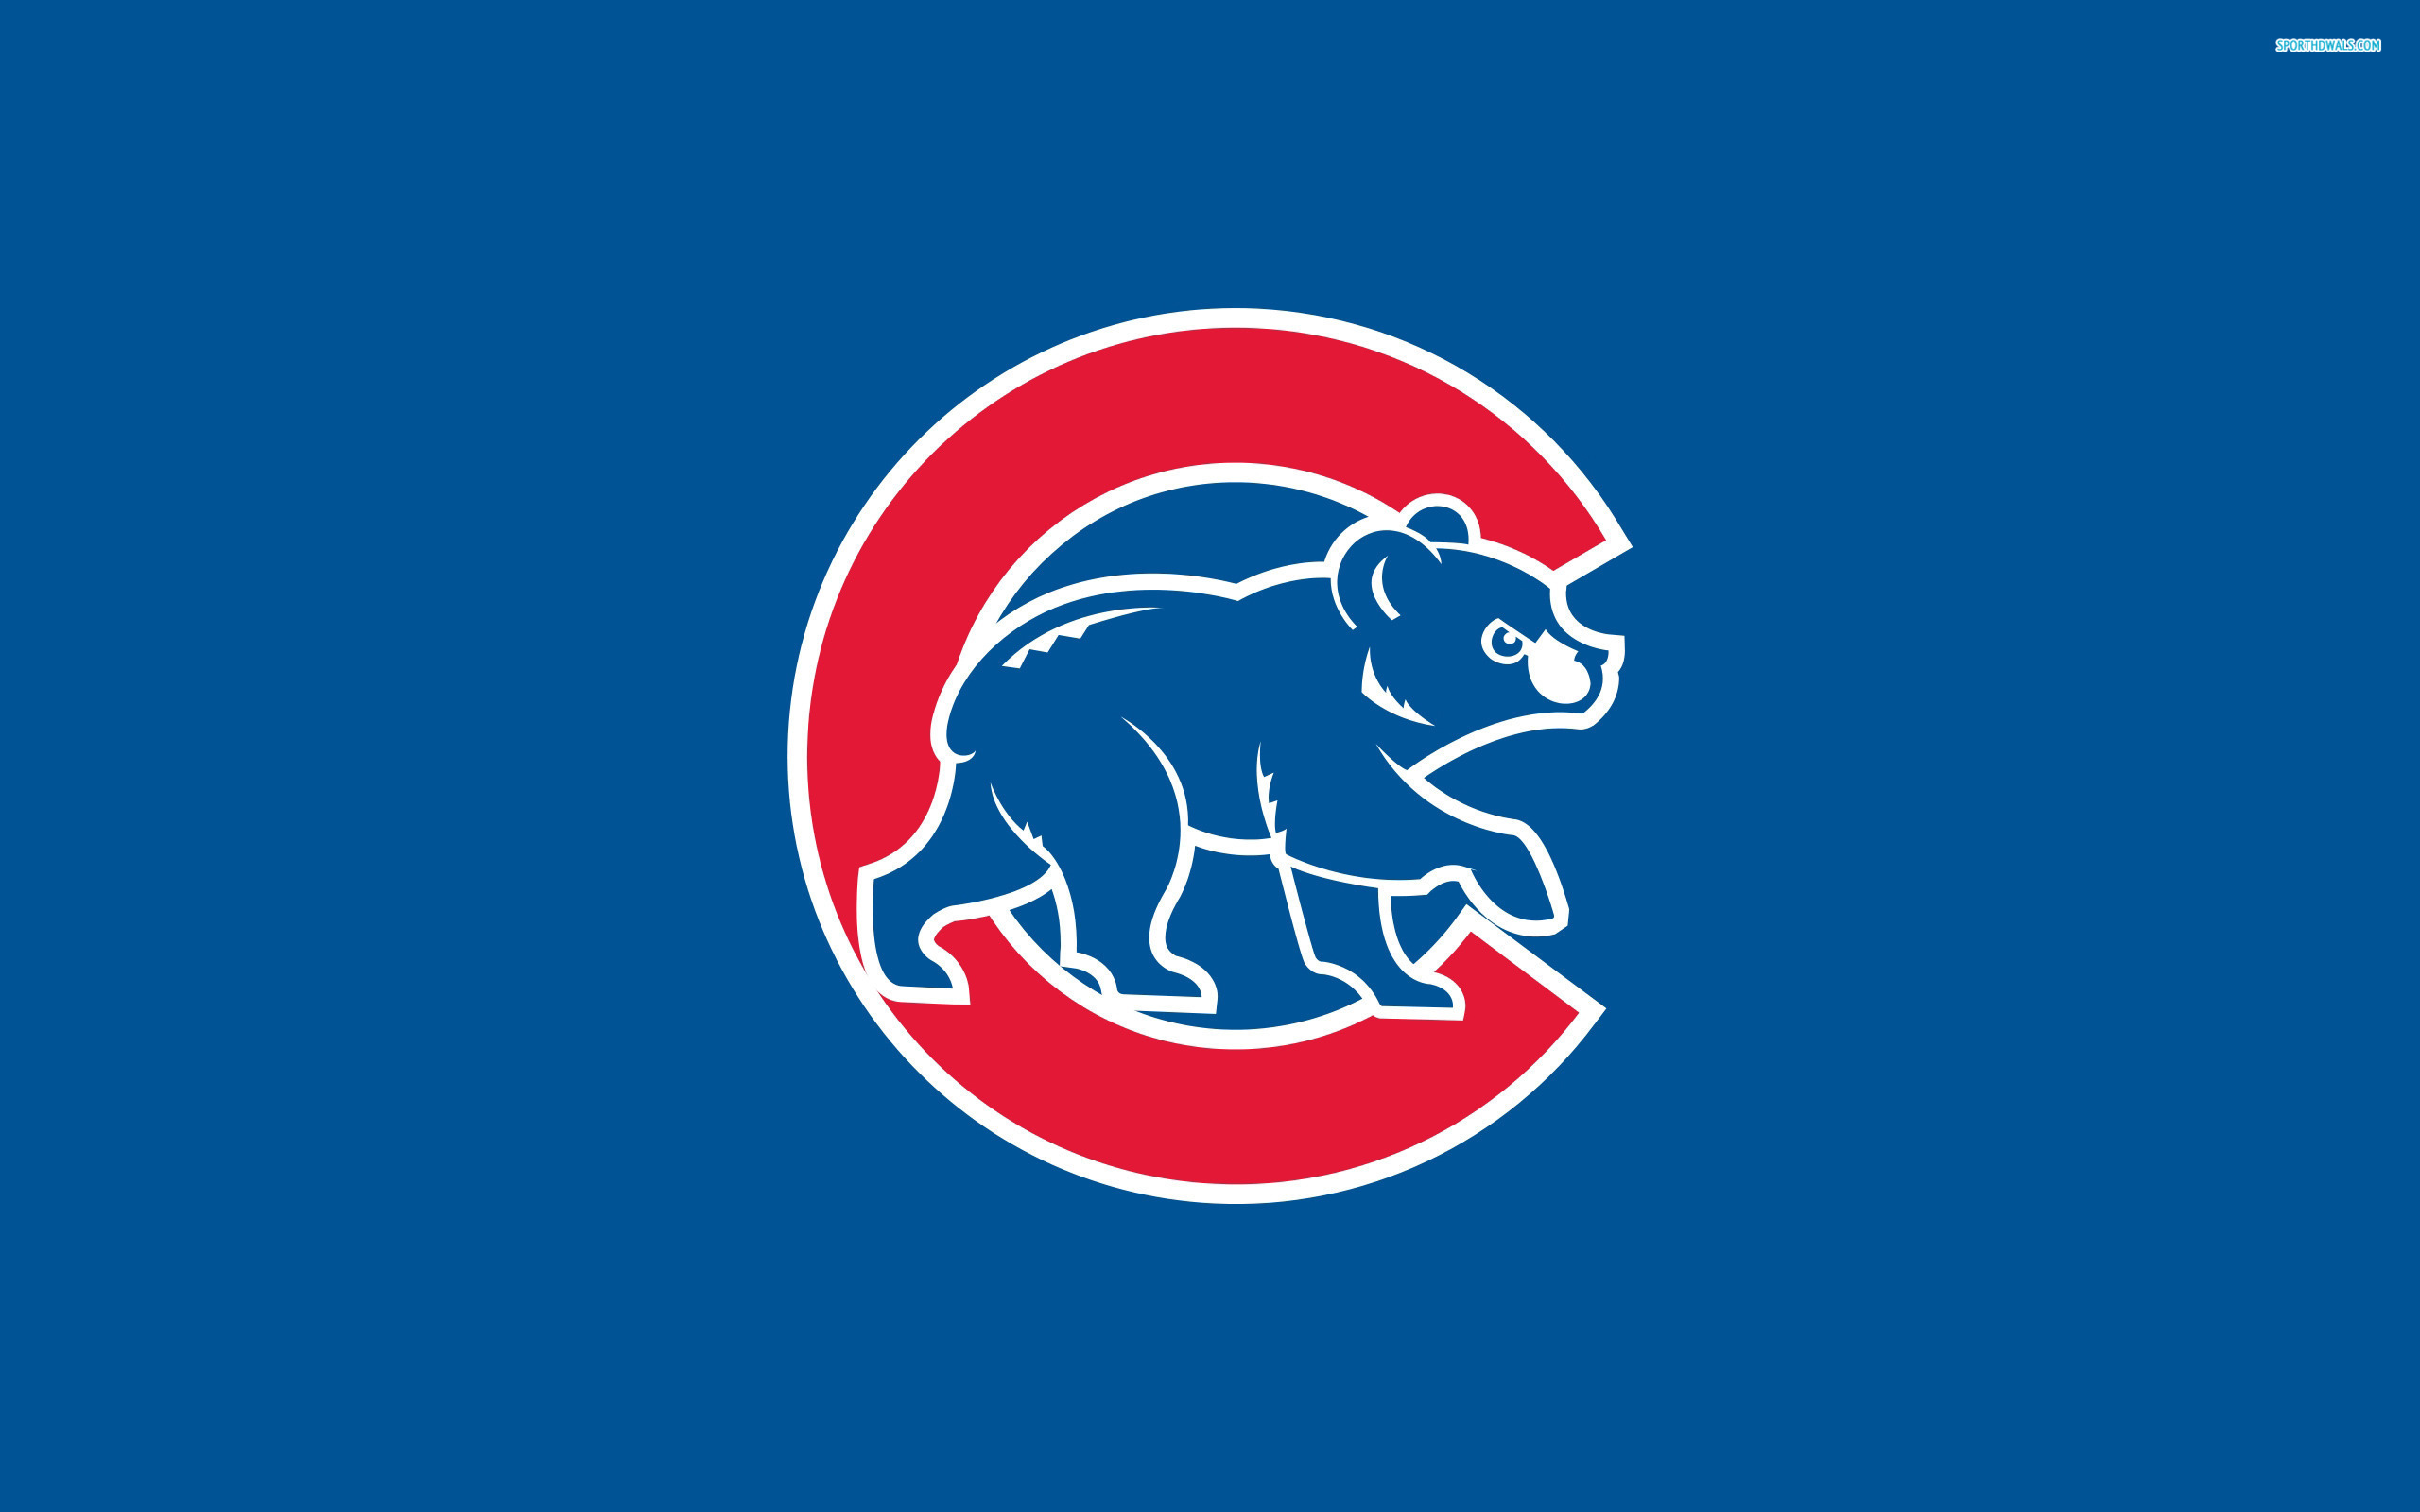 Chicago Cubs wallpaper 2560x1600